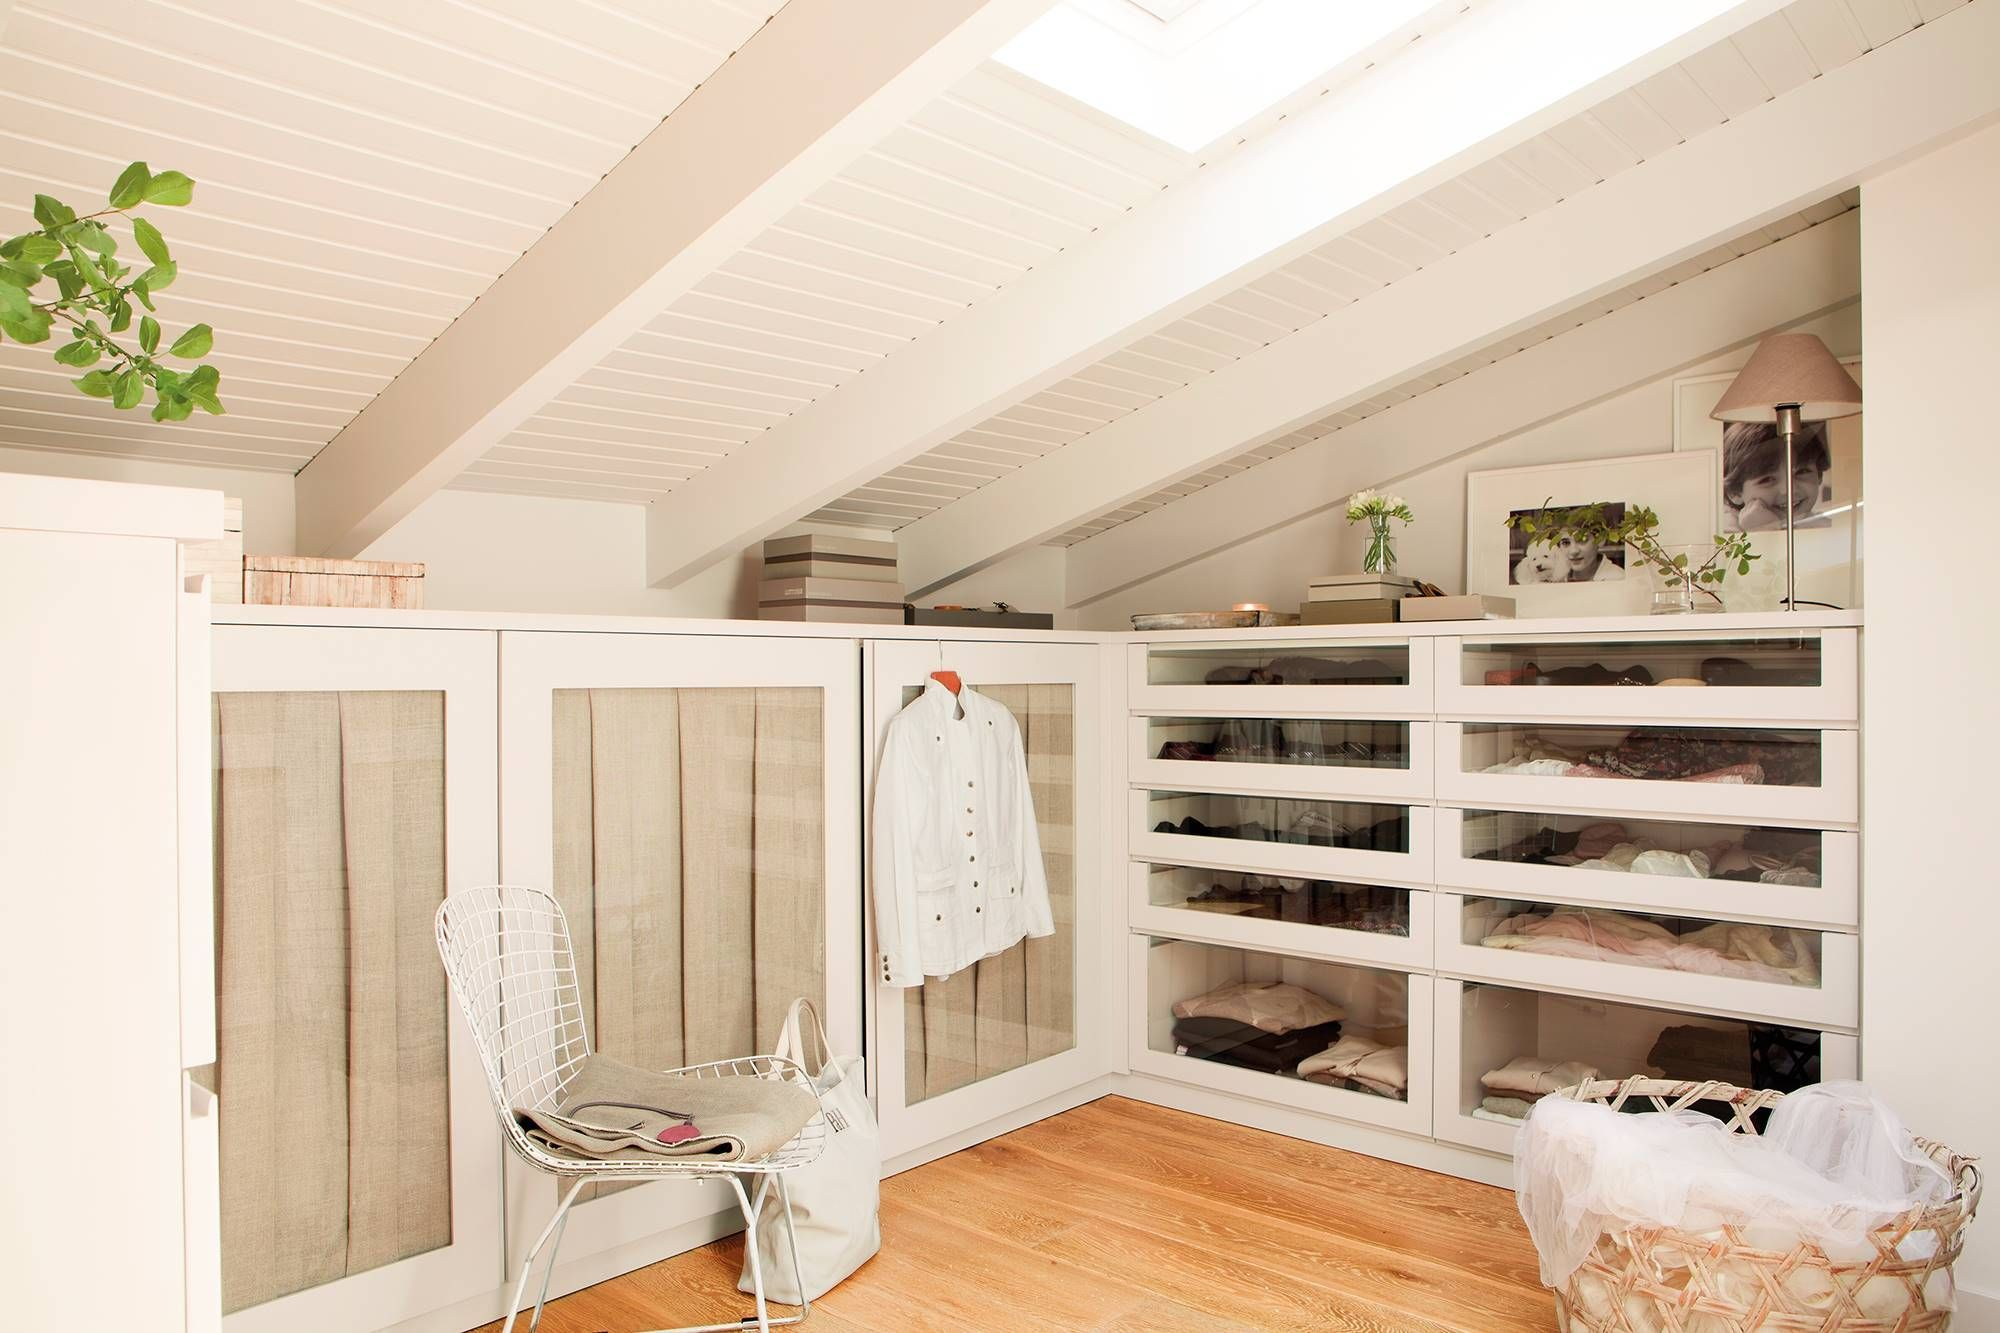 16 Unbelievable Attic Storage Containers Ideas Dachboden